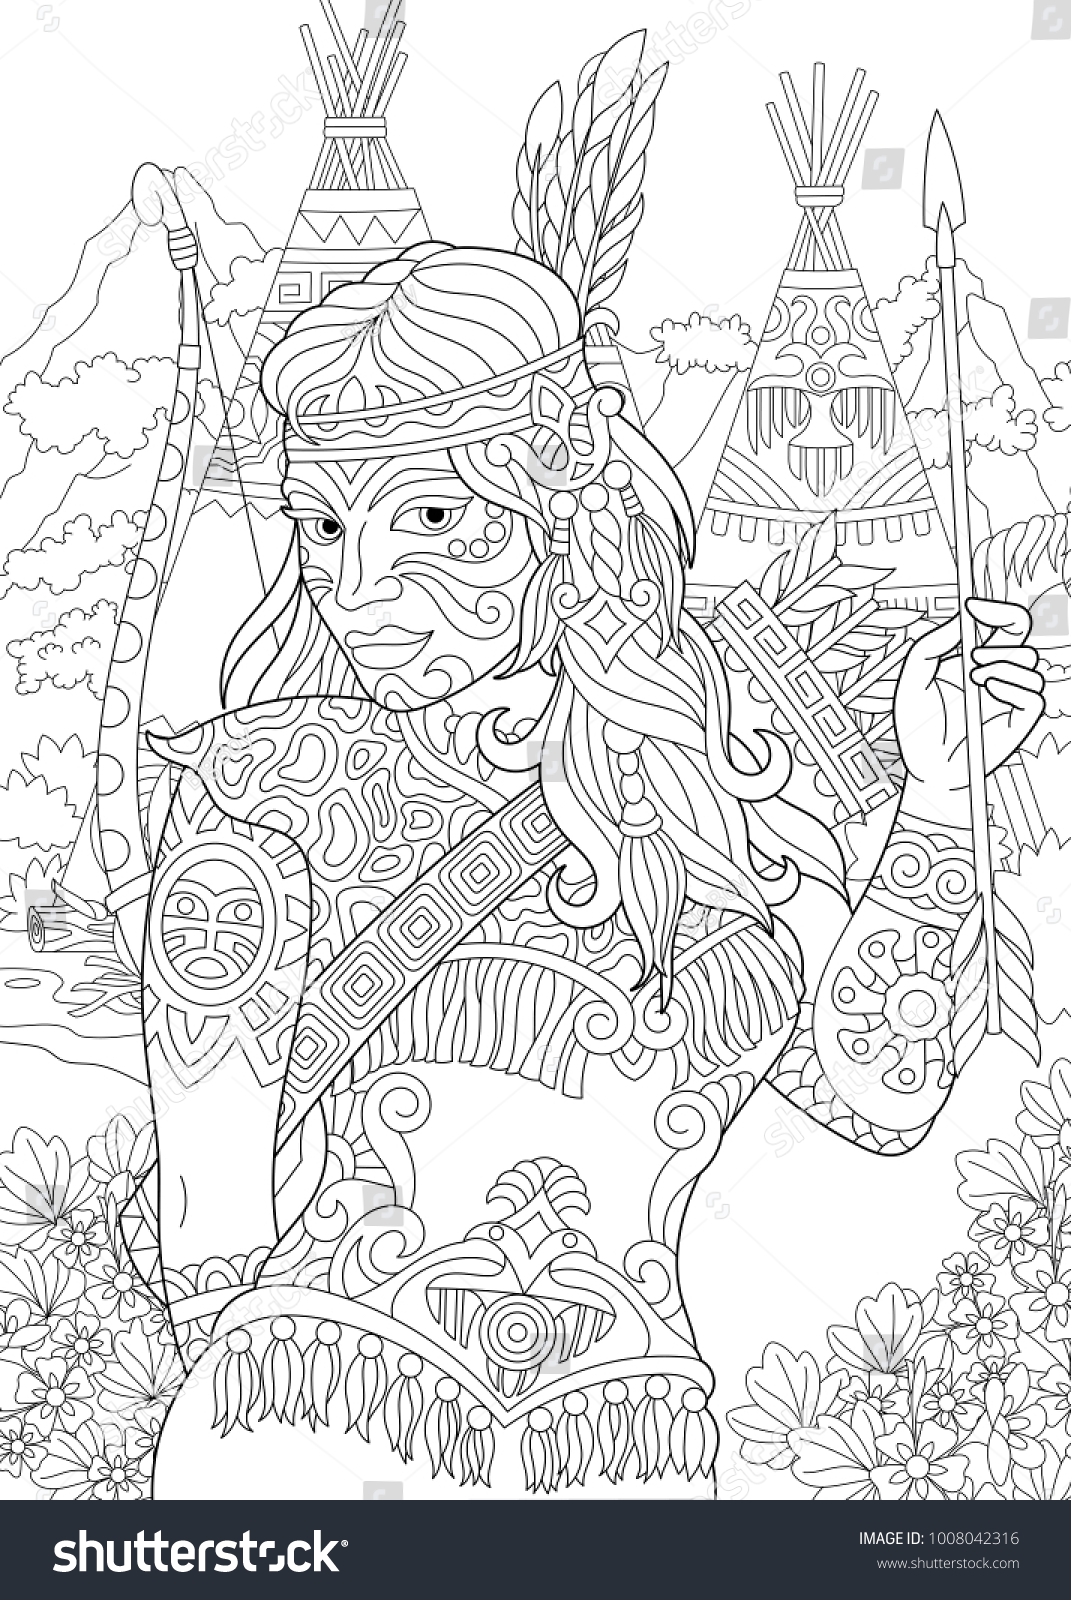 amazing navajo coloring pages – lifewiththepeppers.com | 1600x1071